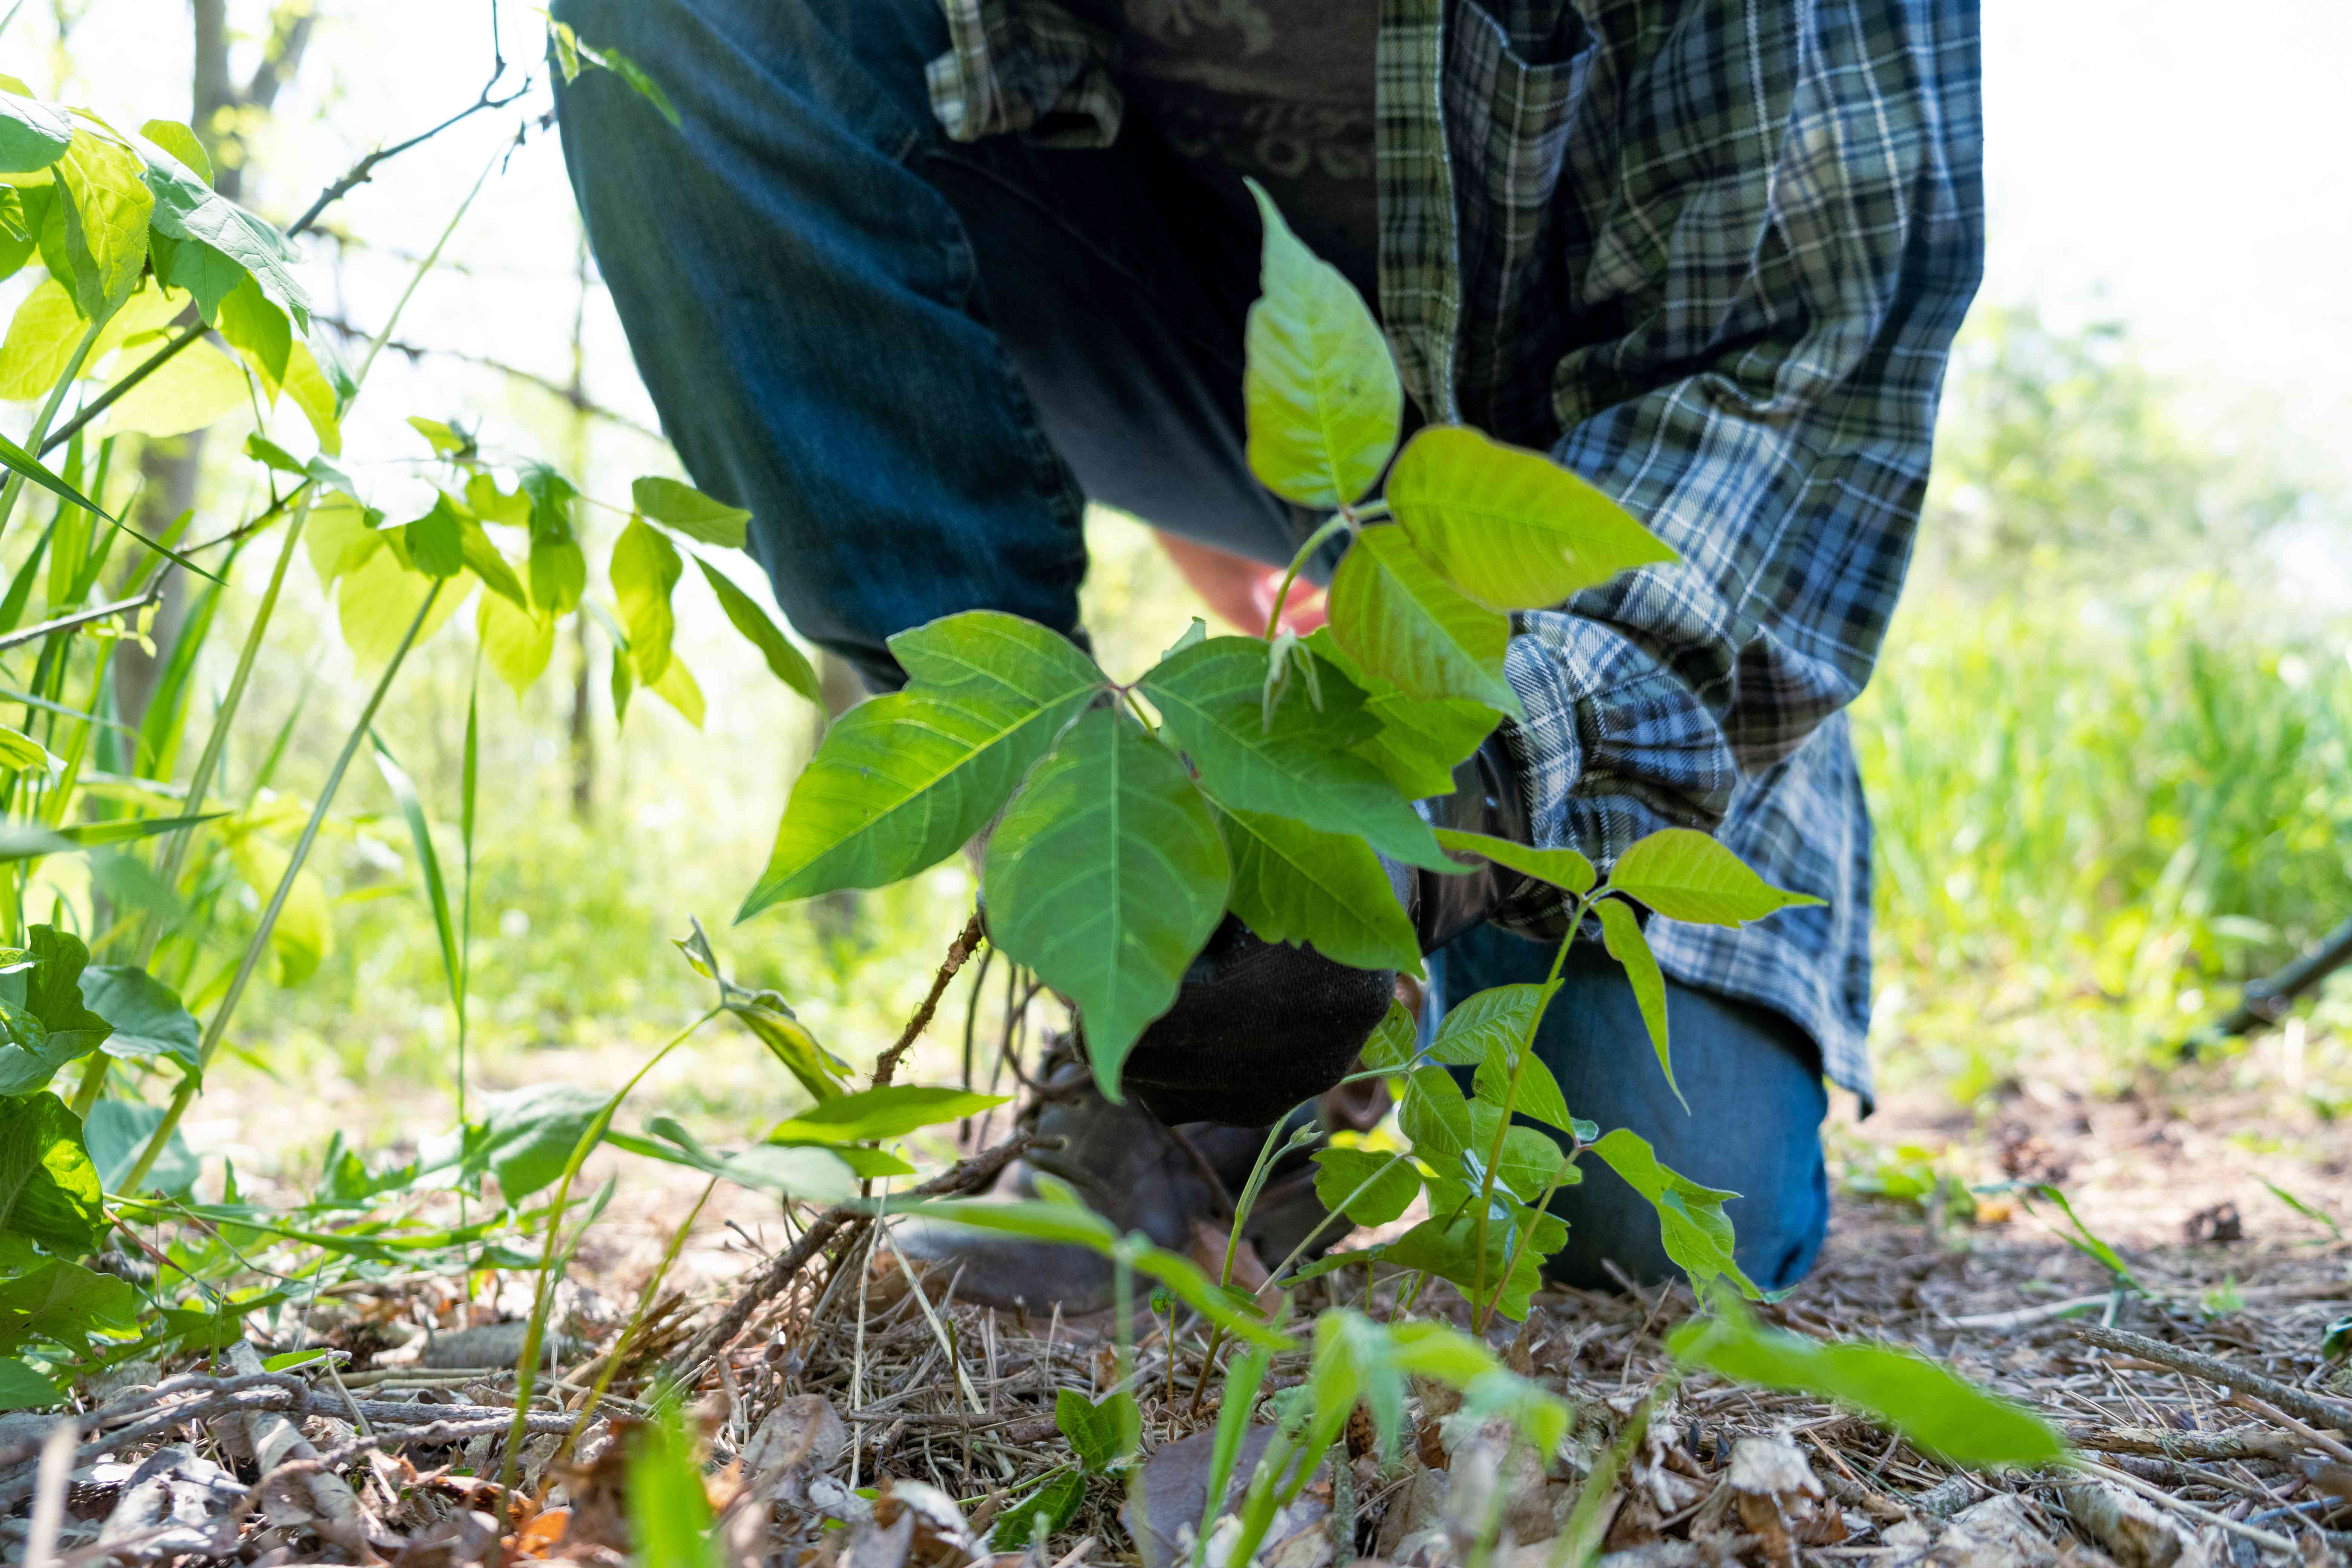 ground view of person in long sleeves and gloves pulling out poison ivy from ground